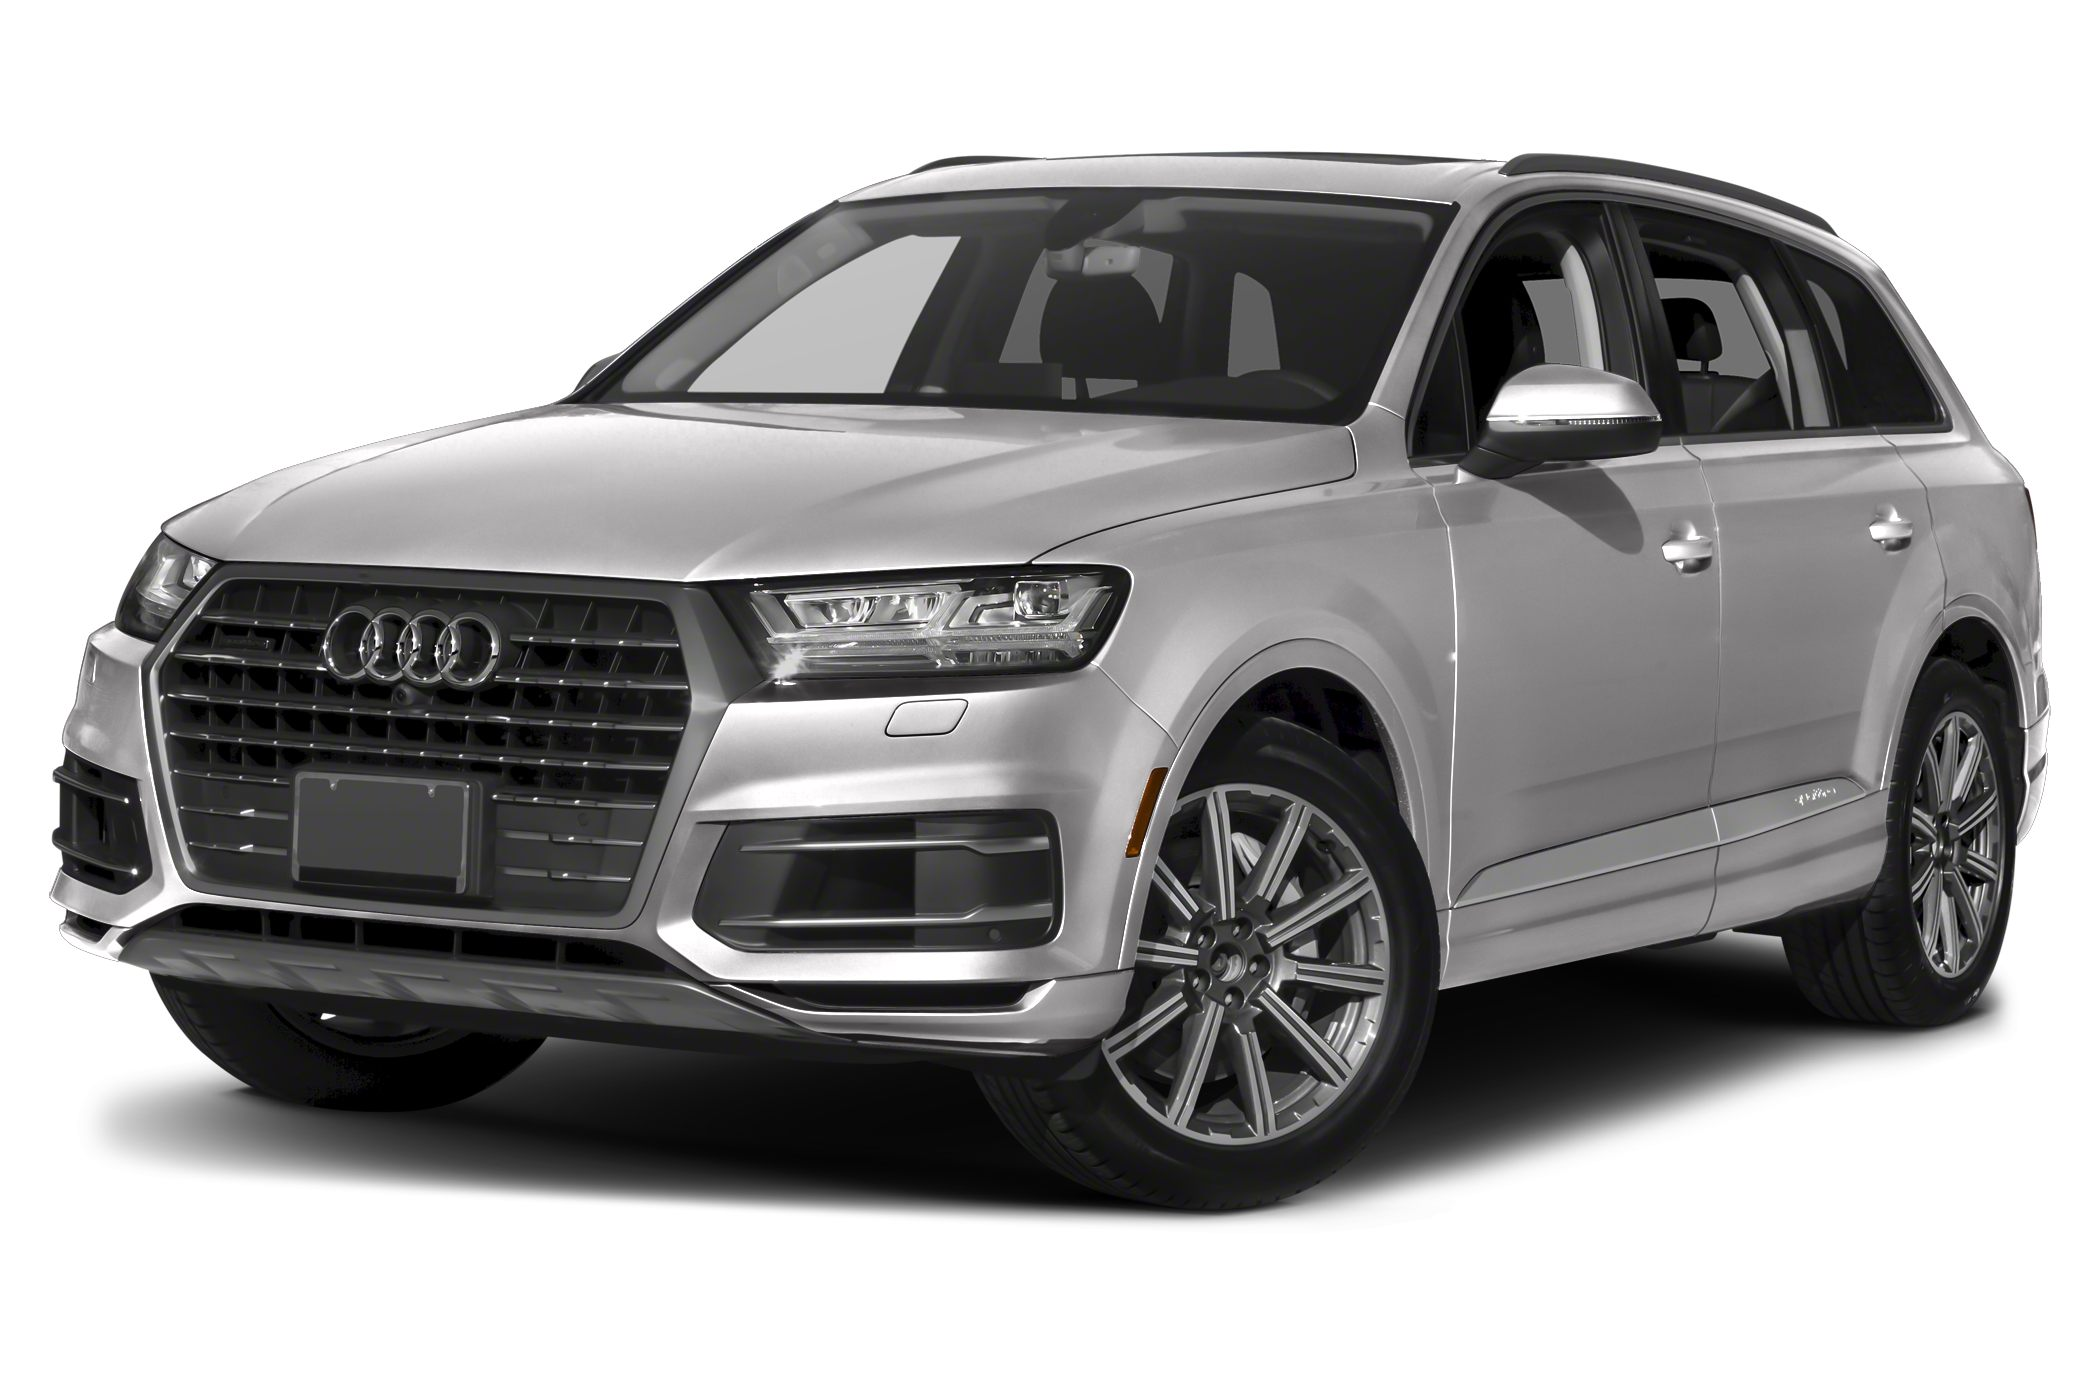 Jeep Models 2015 >> Audi Q7 News, Photos and Buying Information - Autoblog